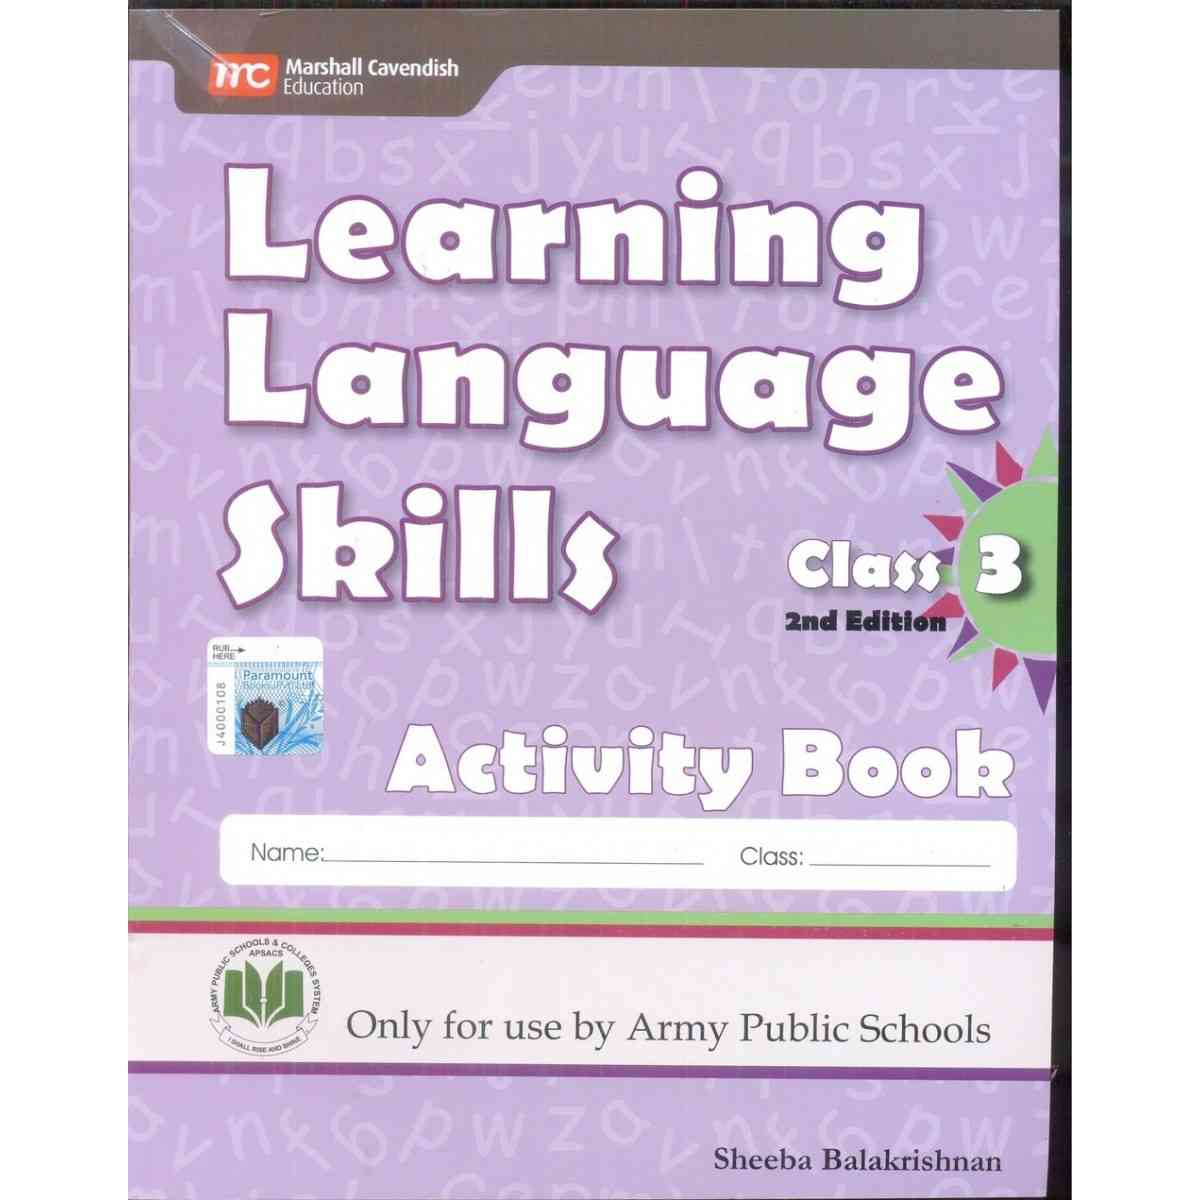 Paramount Learning Language Skills Activity Book 3